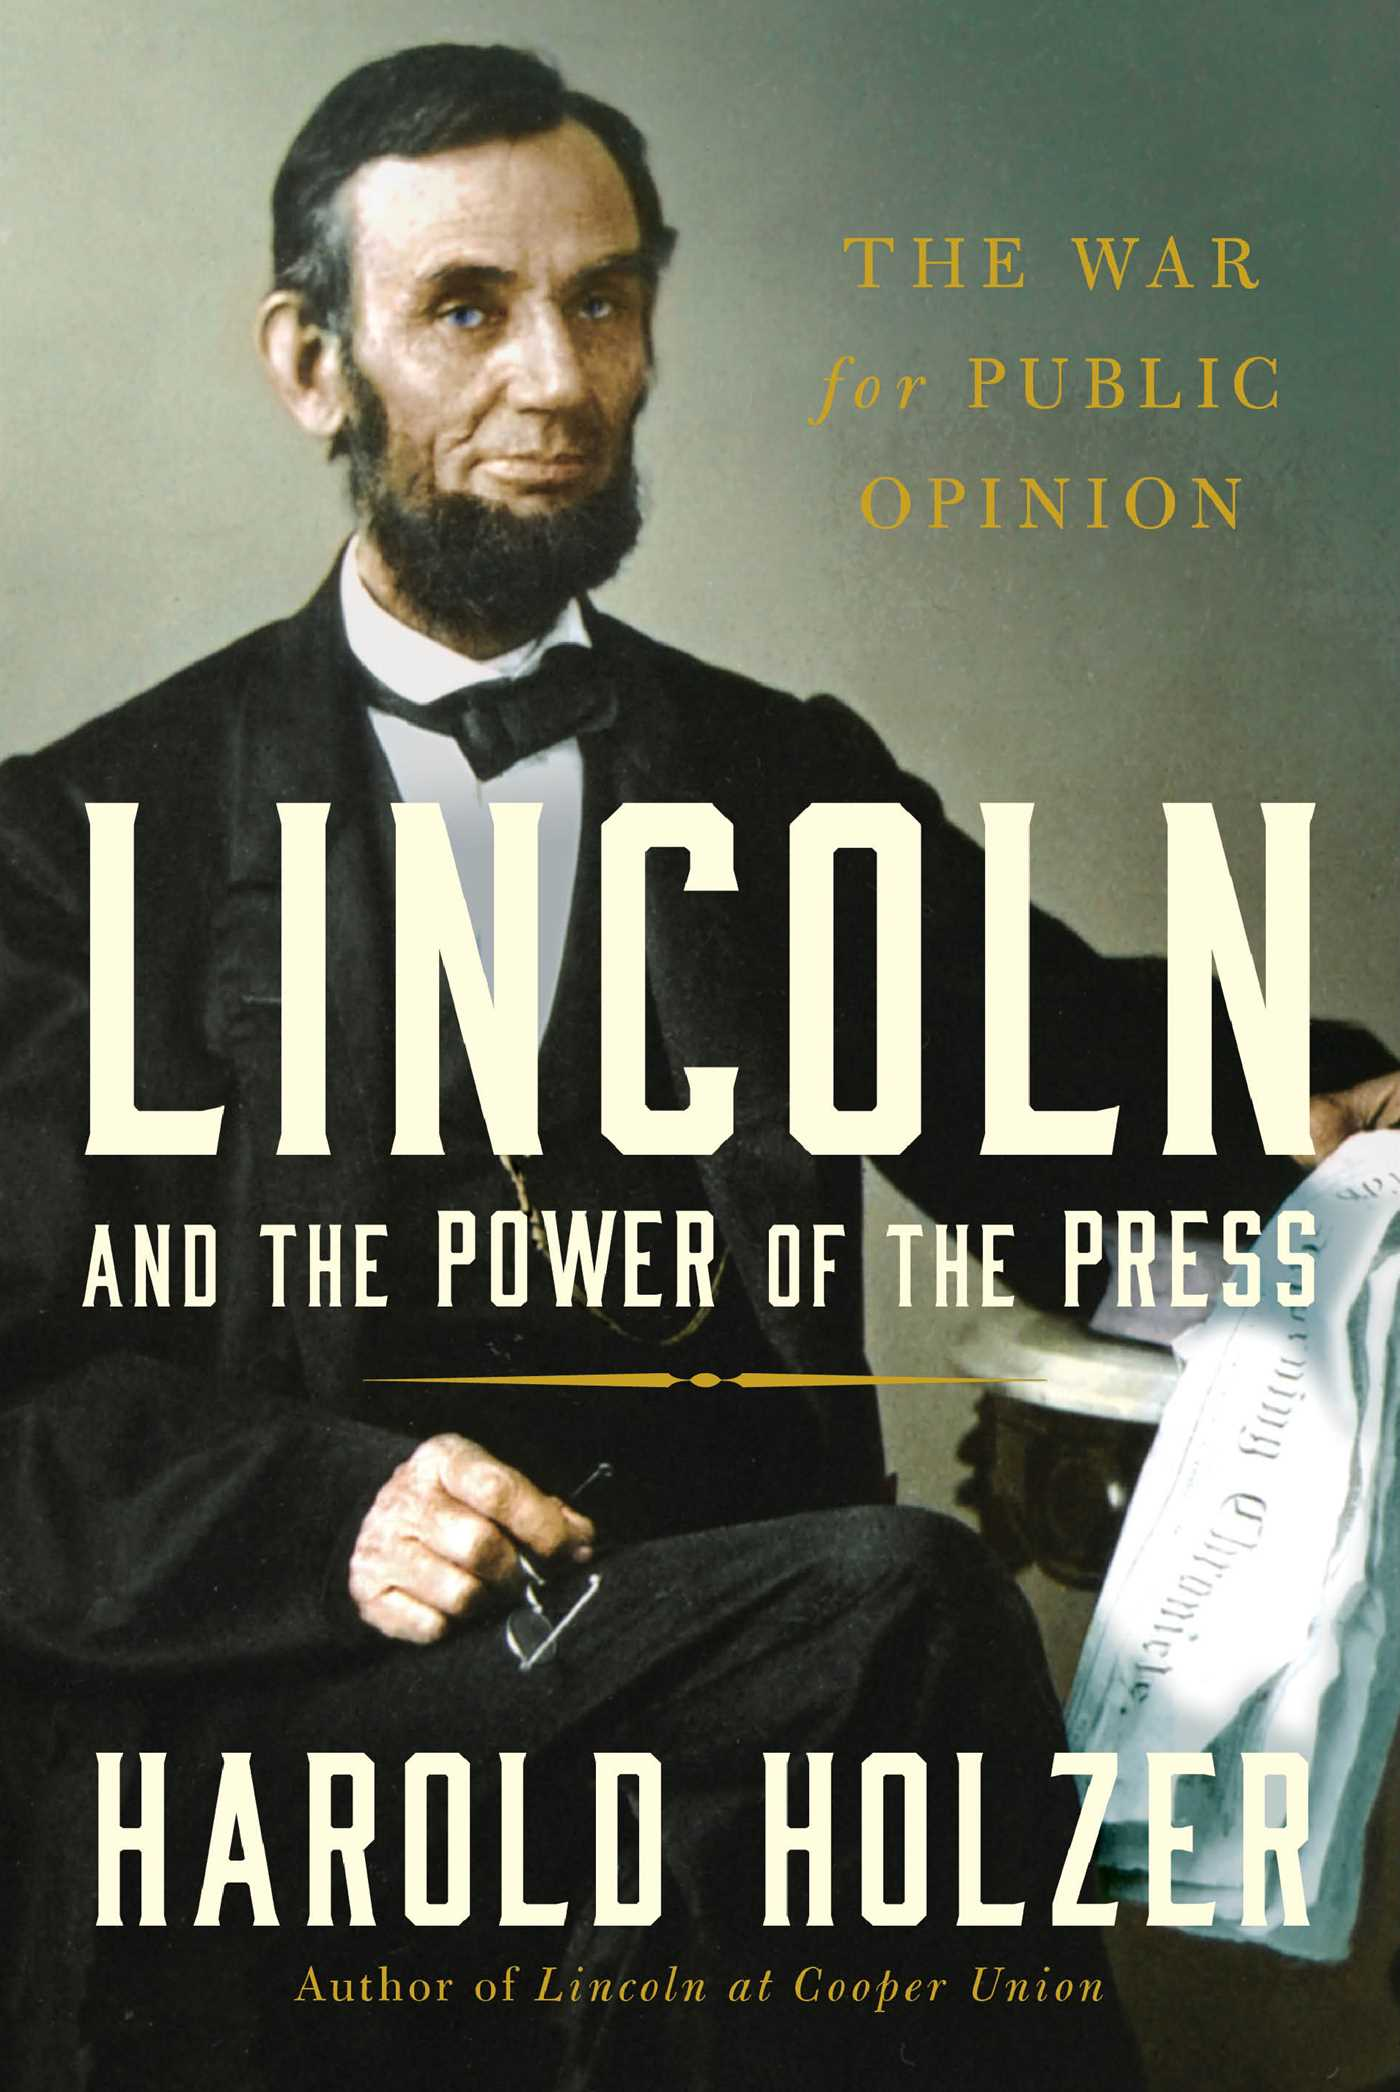 Lincoln and the power of the press 9781439192719 hr